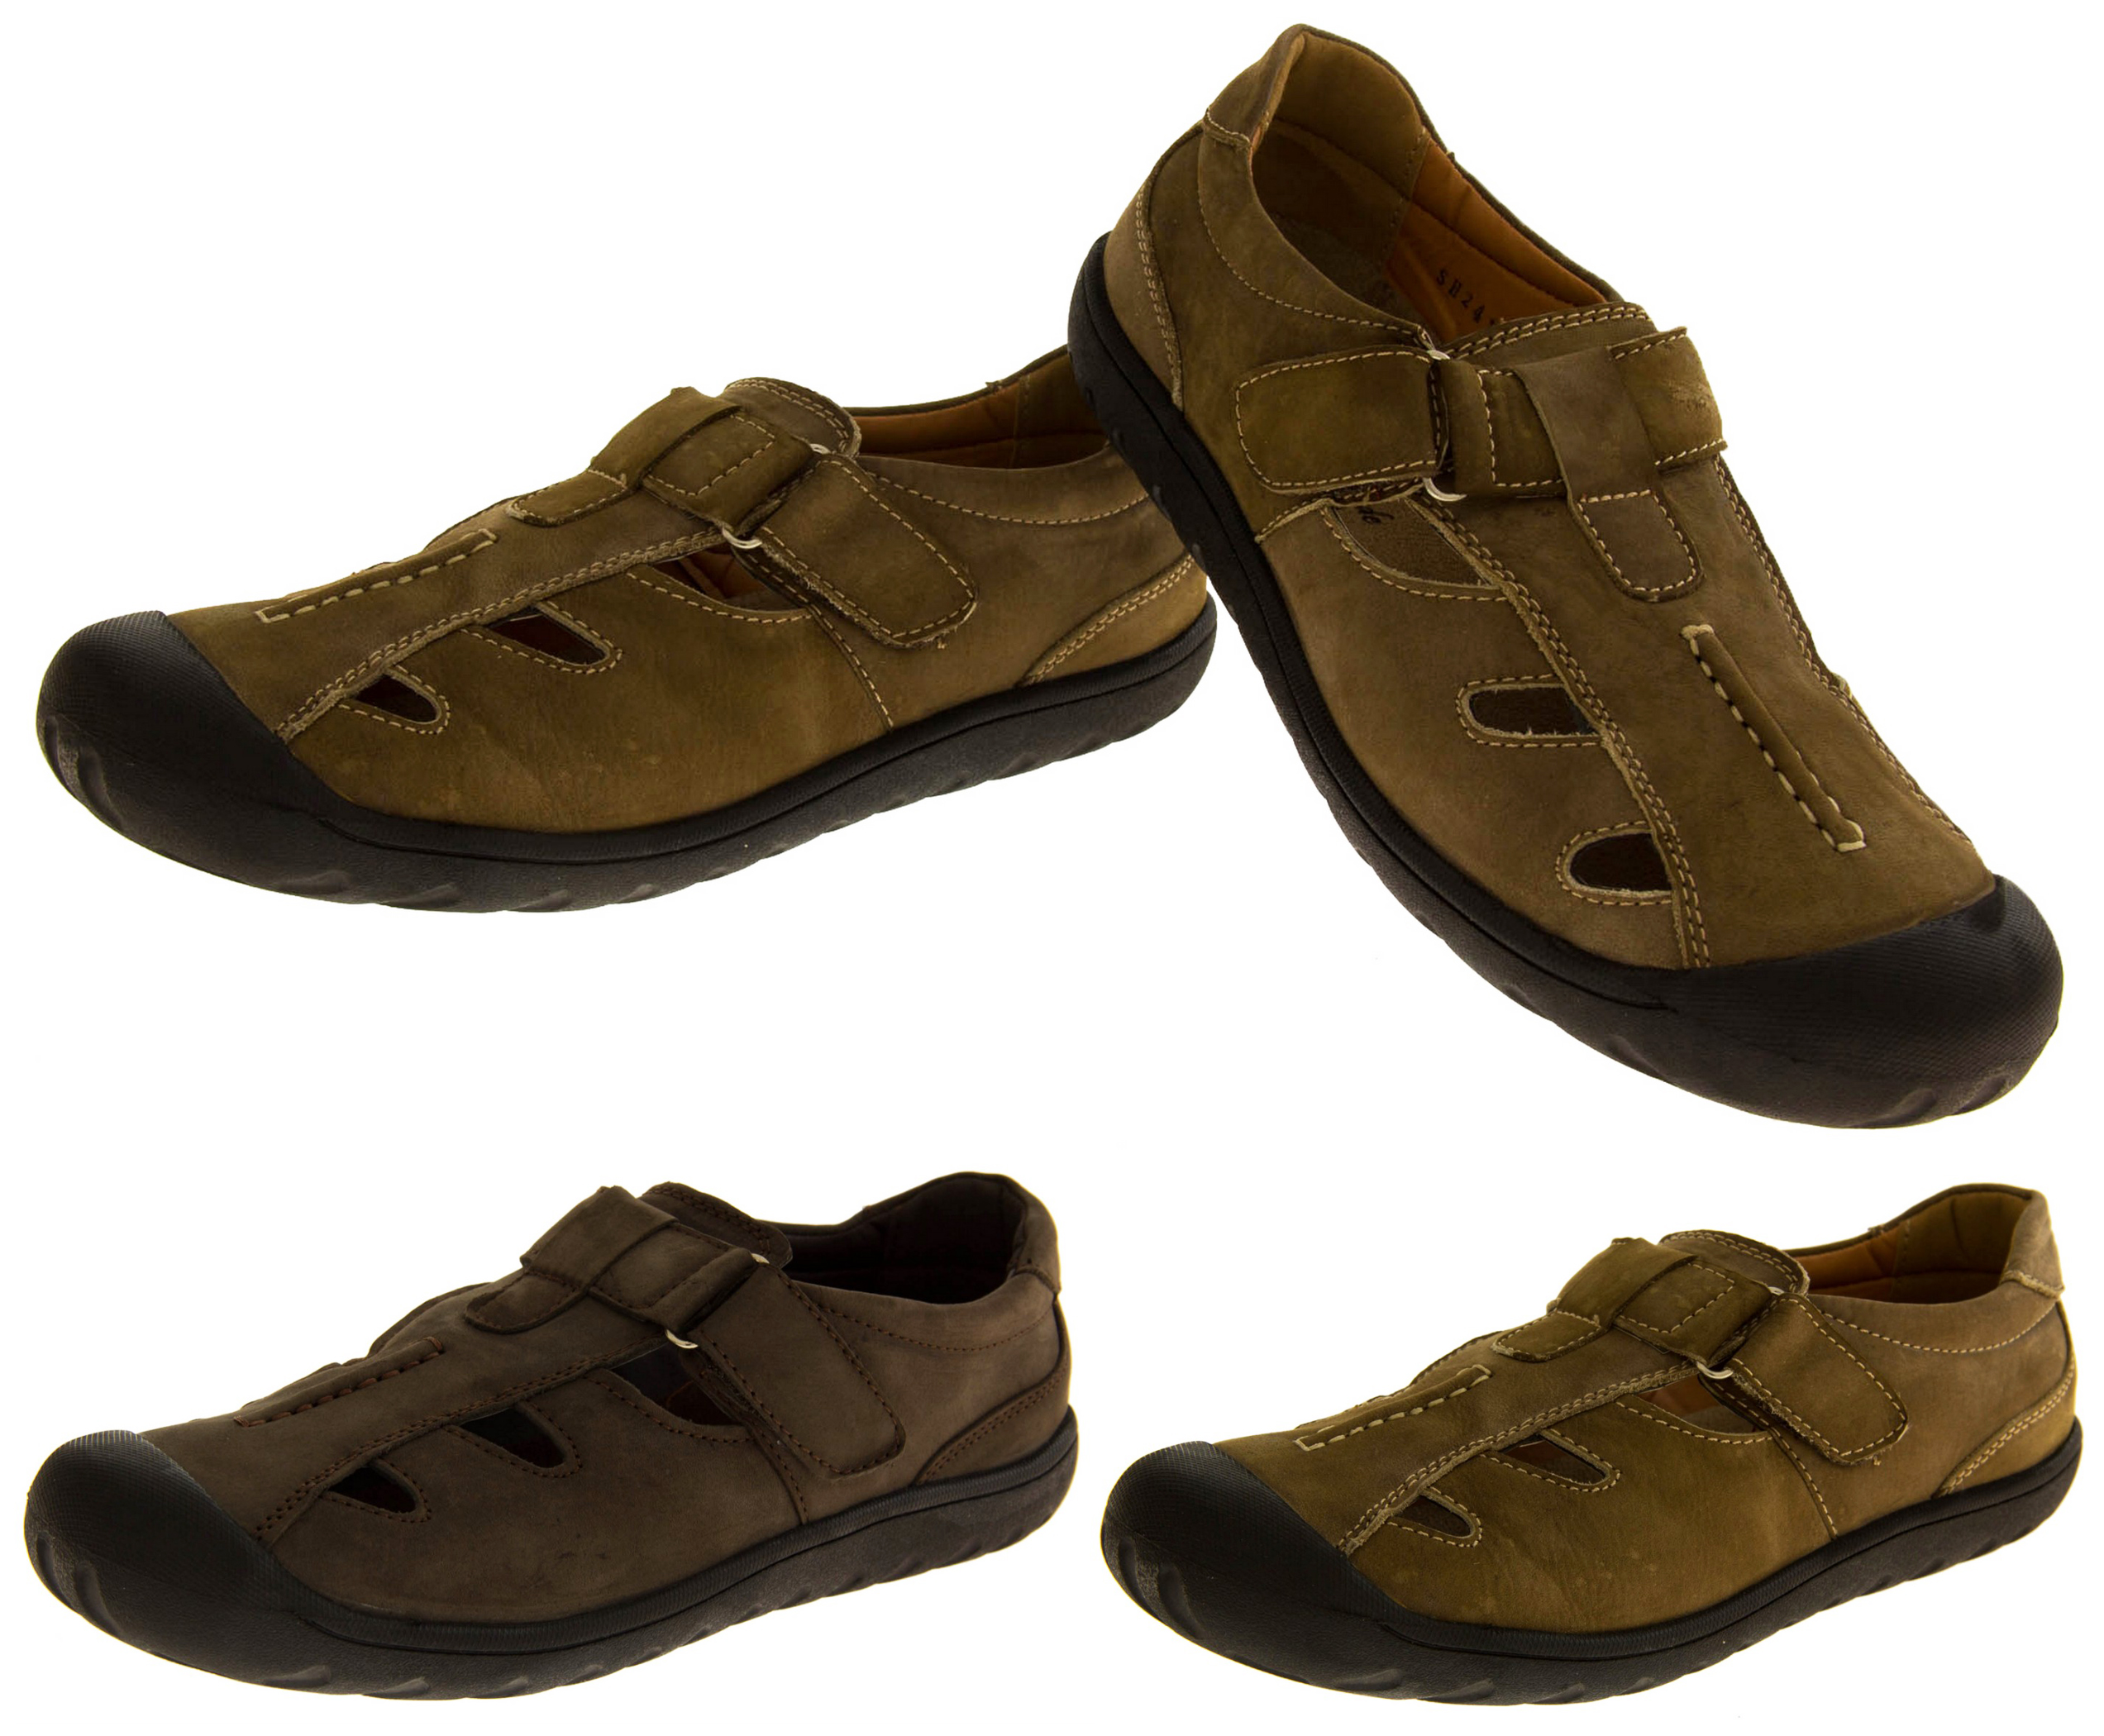 Shoreside Mens Shoes Sandals     Free Shipping    Brand New     Holiday Casual